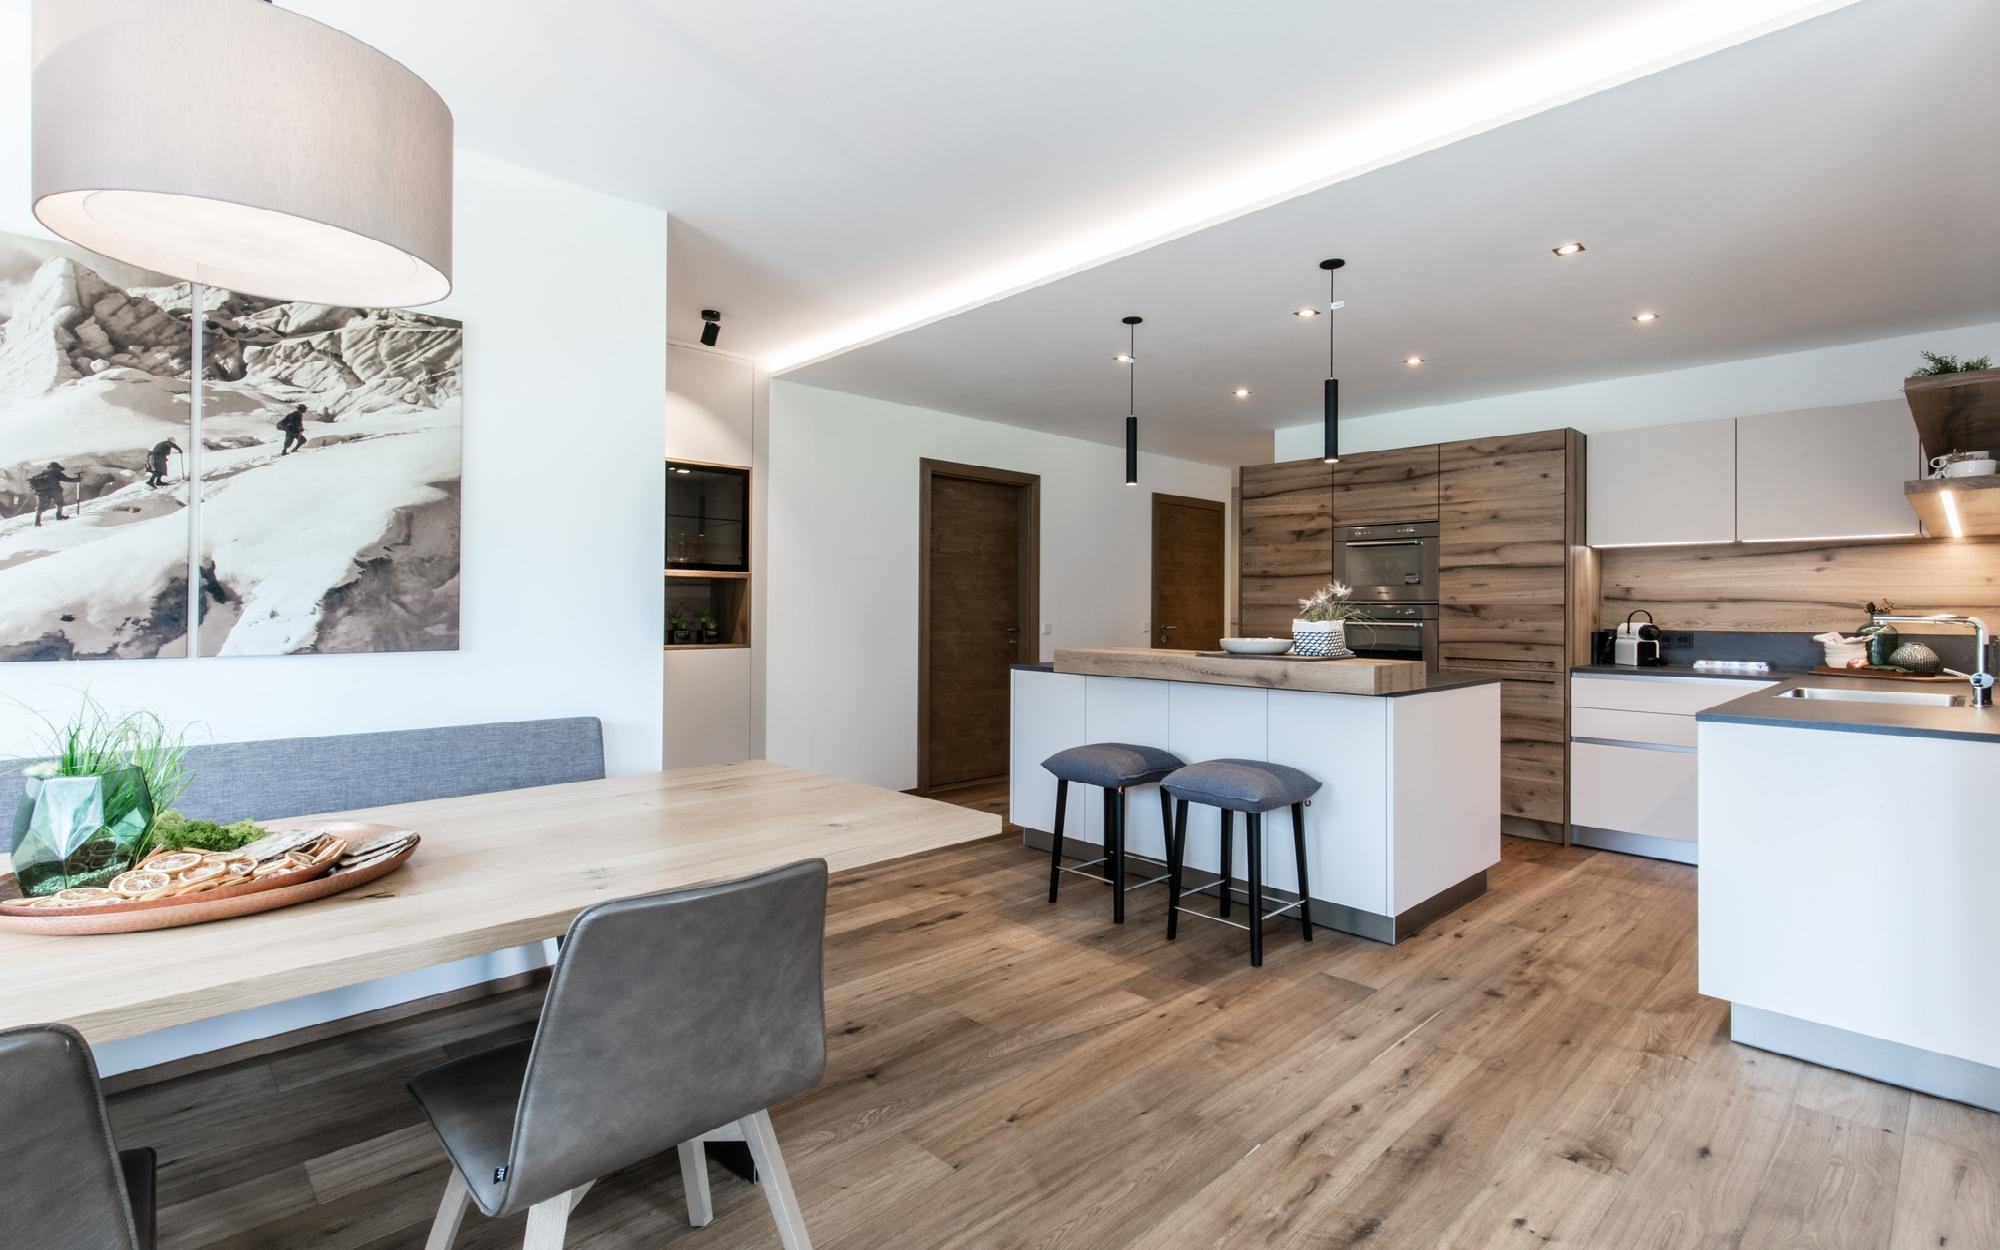 High-quality newly built apartments in Kirchberg